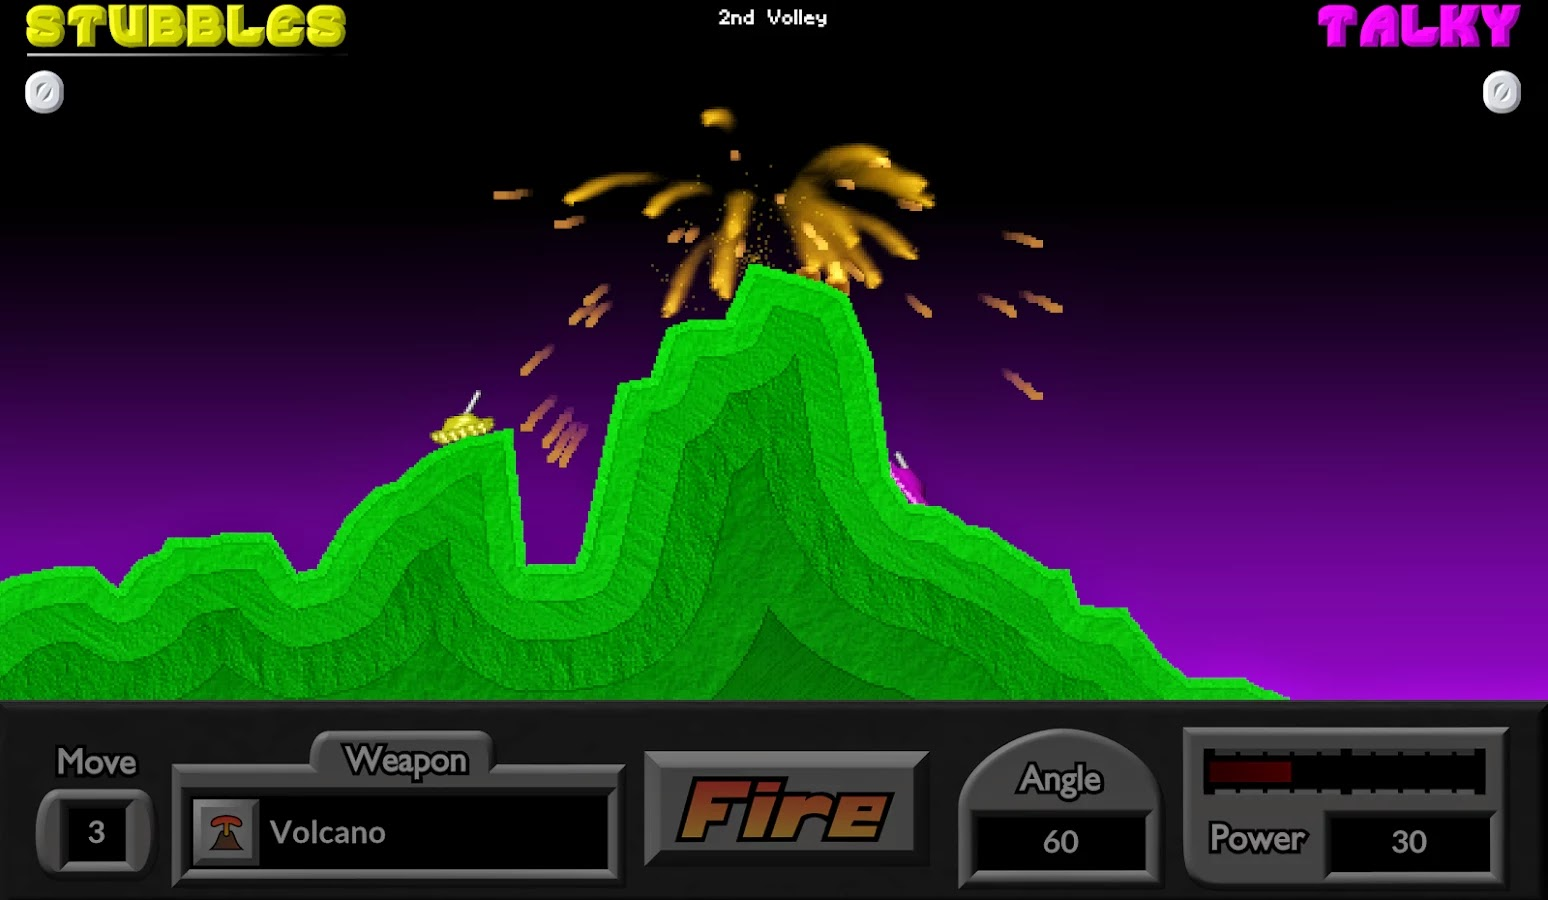 Pocket Tanks Deluxe APK V2.0.4 Full Unlocked - Apklover.NET